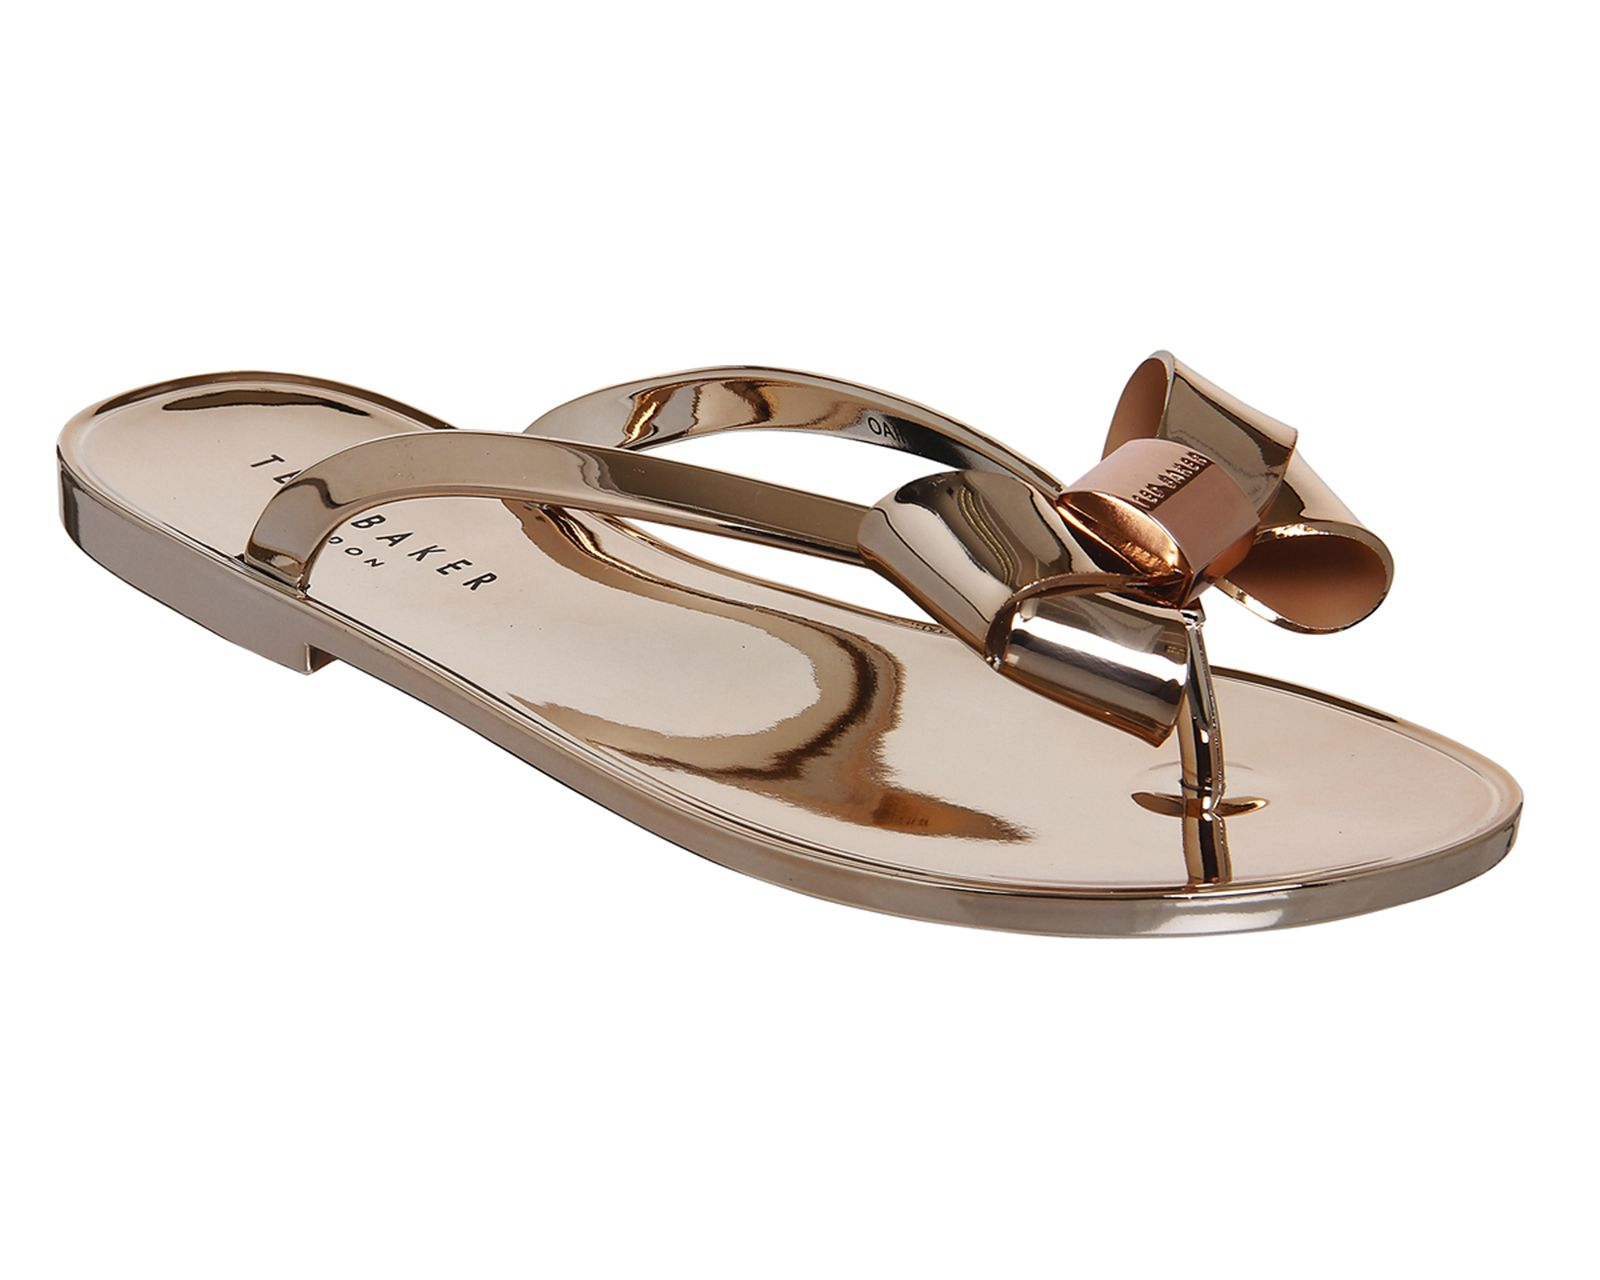 637bf67841d143 Buy Rose Gold Exclusive Ted Baker Ettiea Flip Flops from OFFICE.co ...